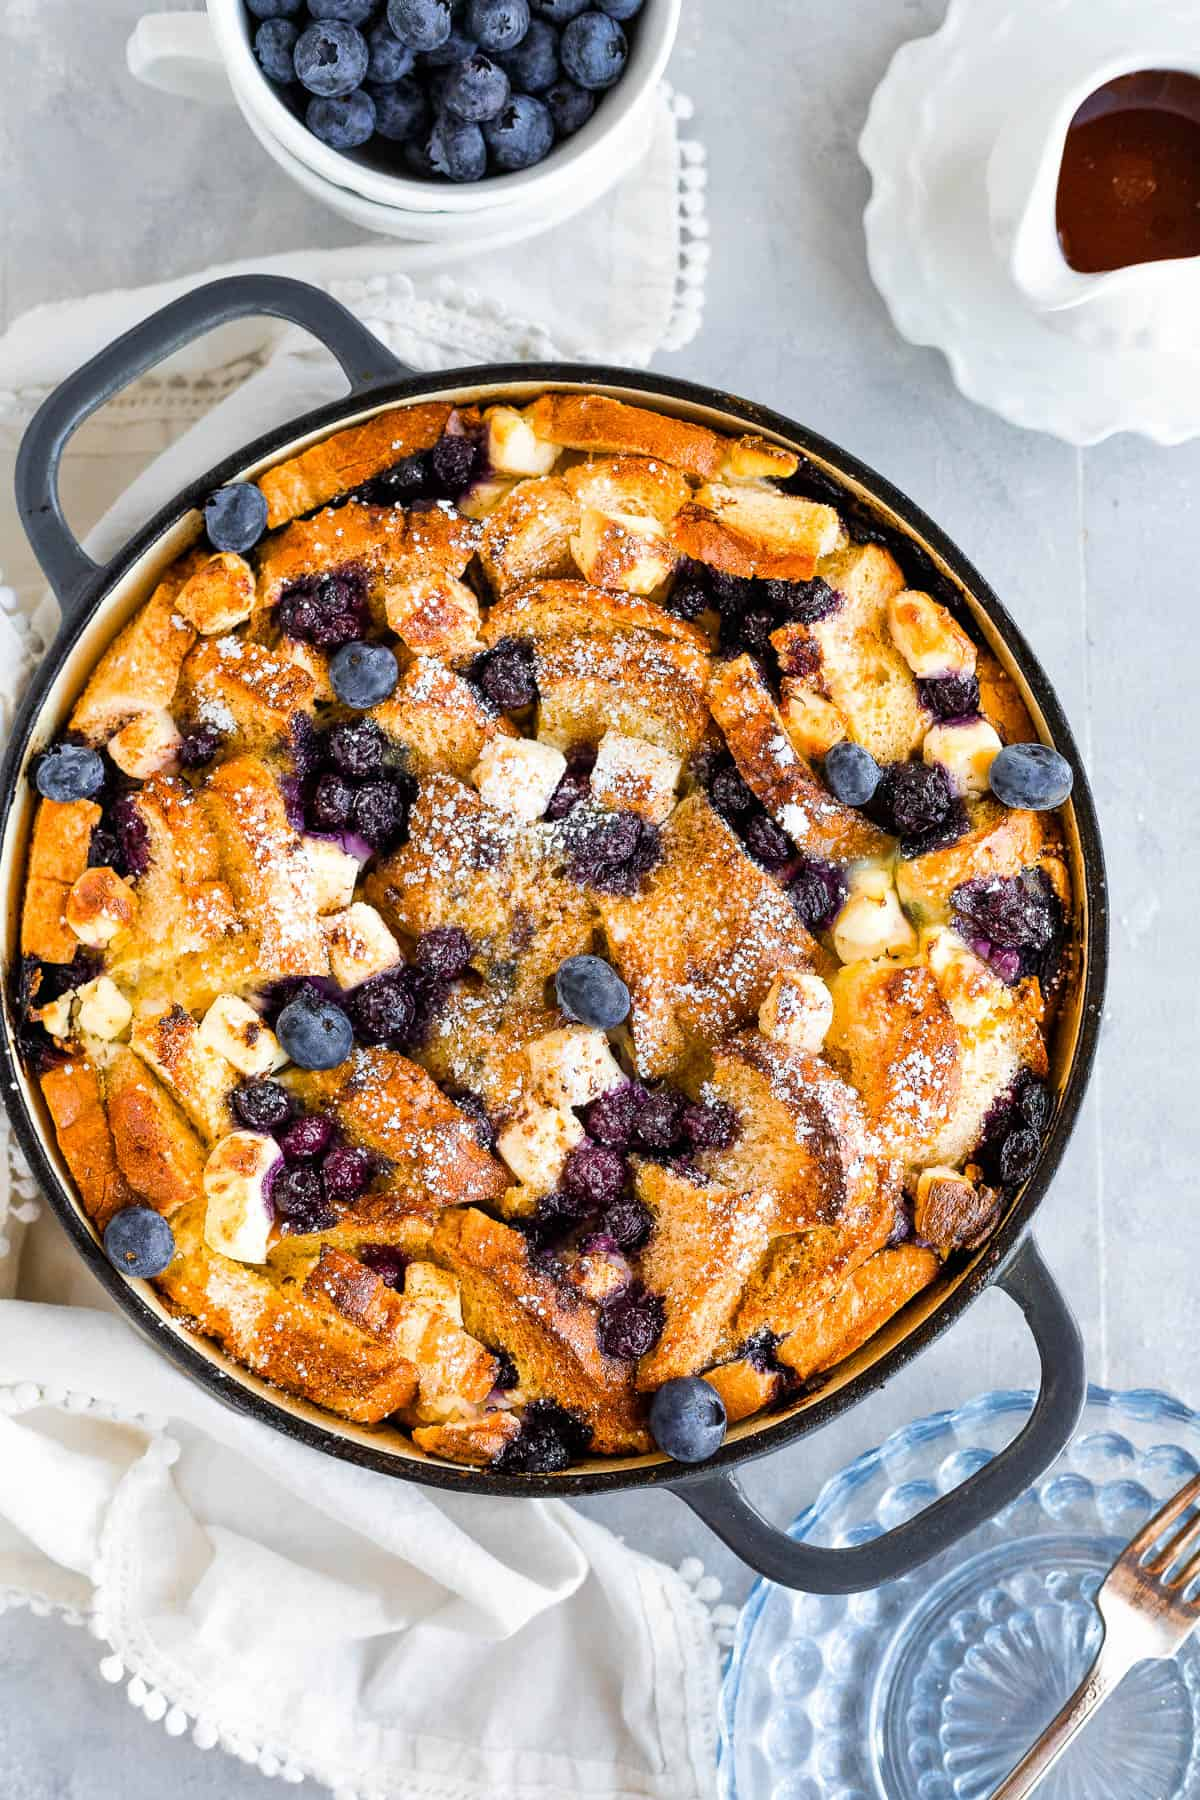 Overhead shot of a round baking dish with Baked Blueberry French Toast